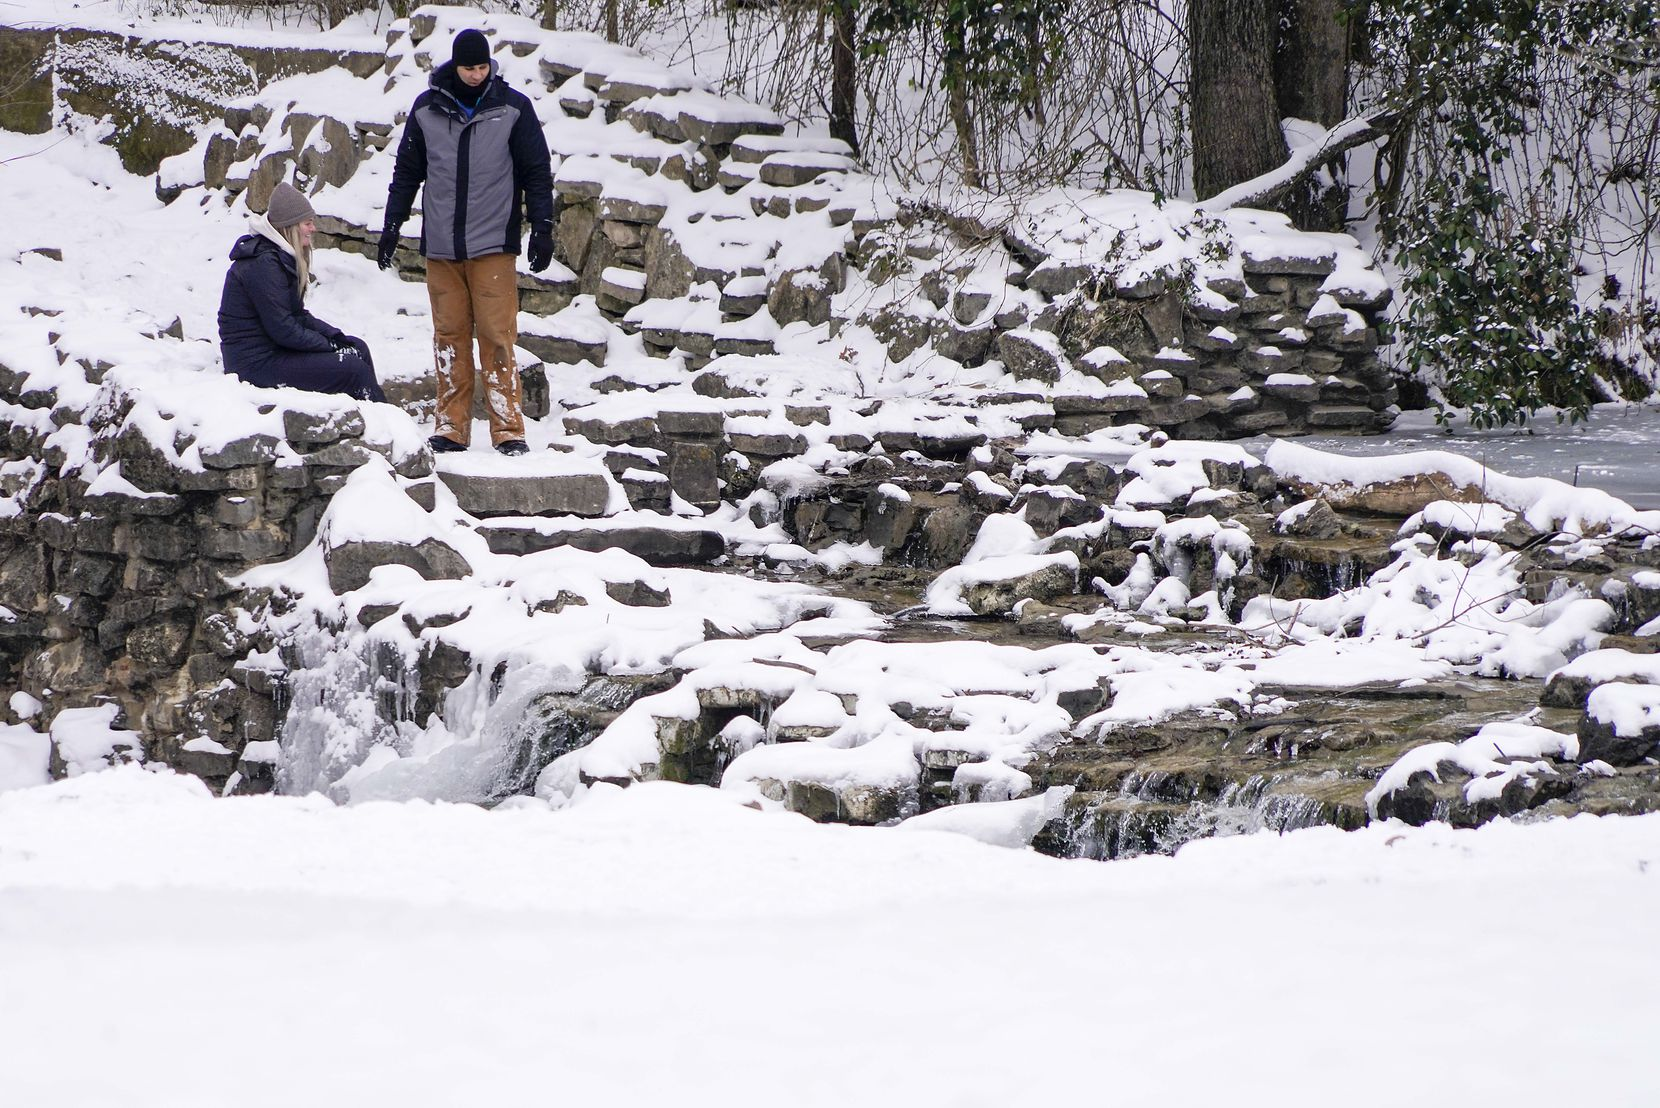 People check out the partially frozen waterfall in Prairie Creek Park after a second winter storm brought more snow and continued freezing temperatures to North Texas on Wednesday, Feb. 17, 2021, in Richardson.